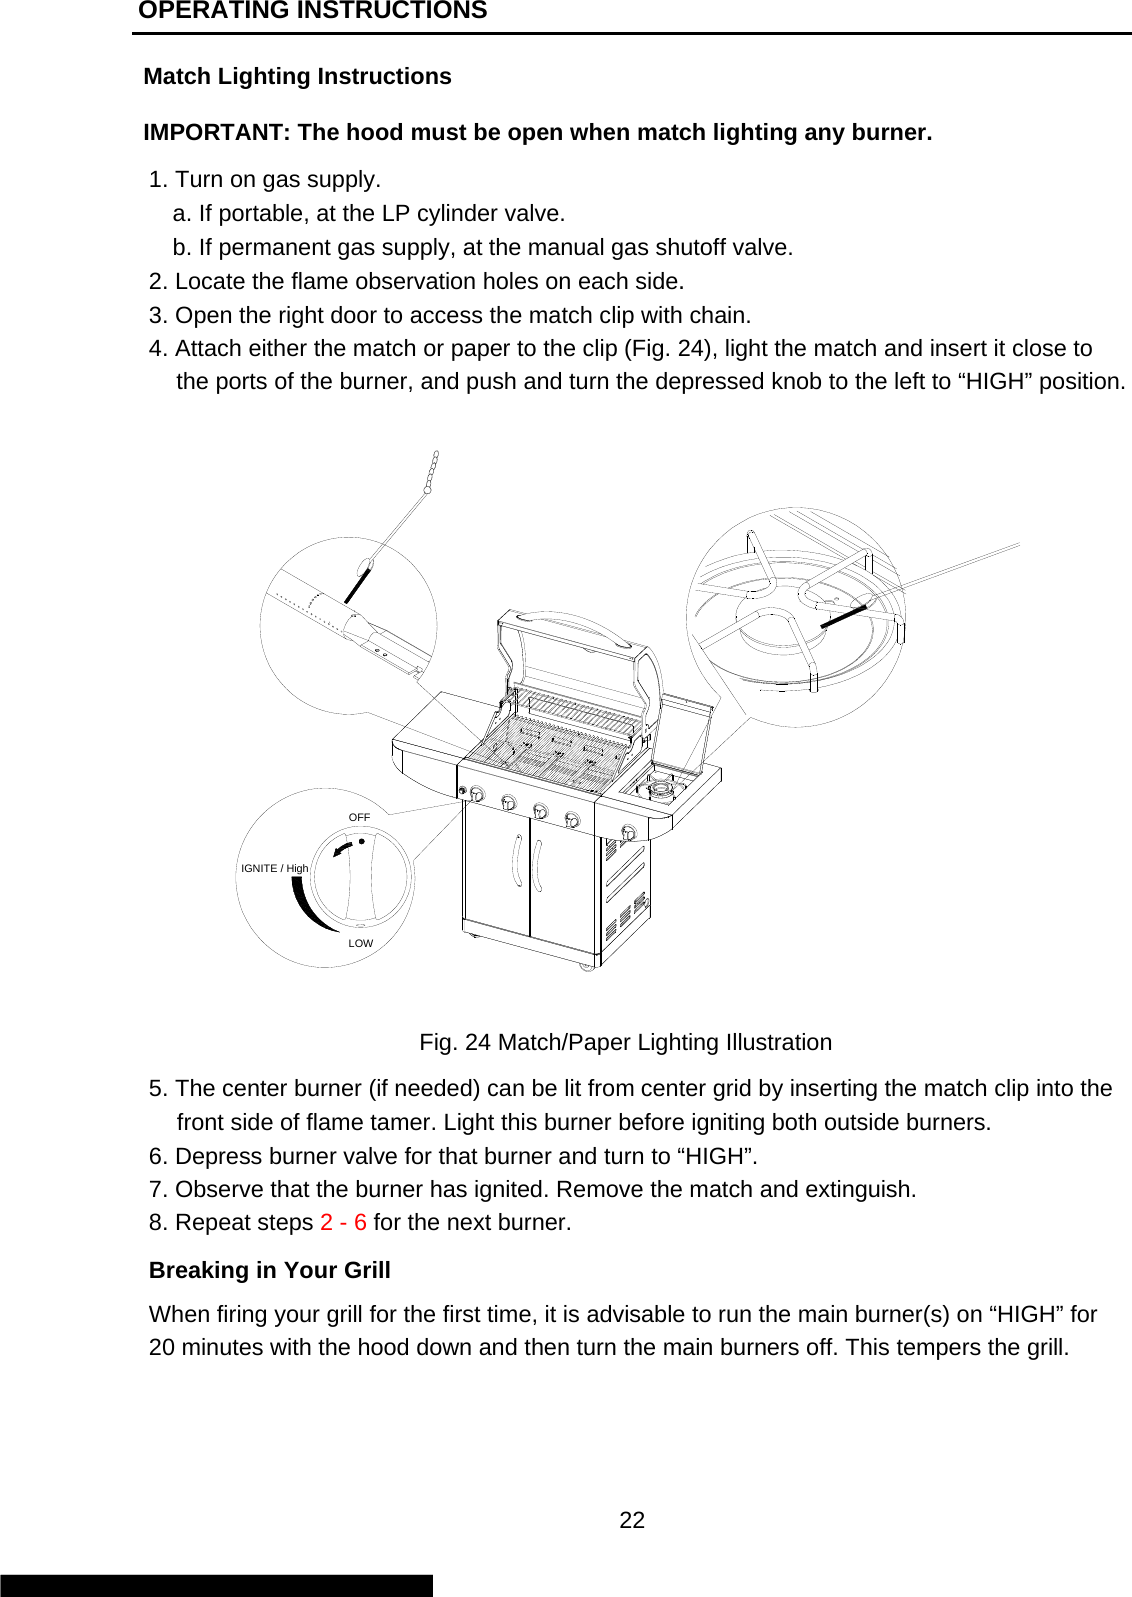 Master Forge 1010037 Owners Manual ManualsLib Makes It Easy